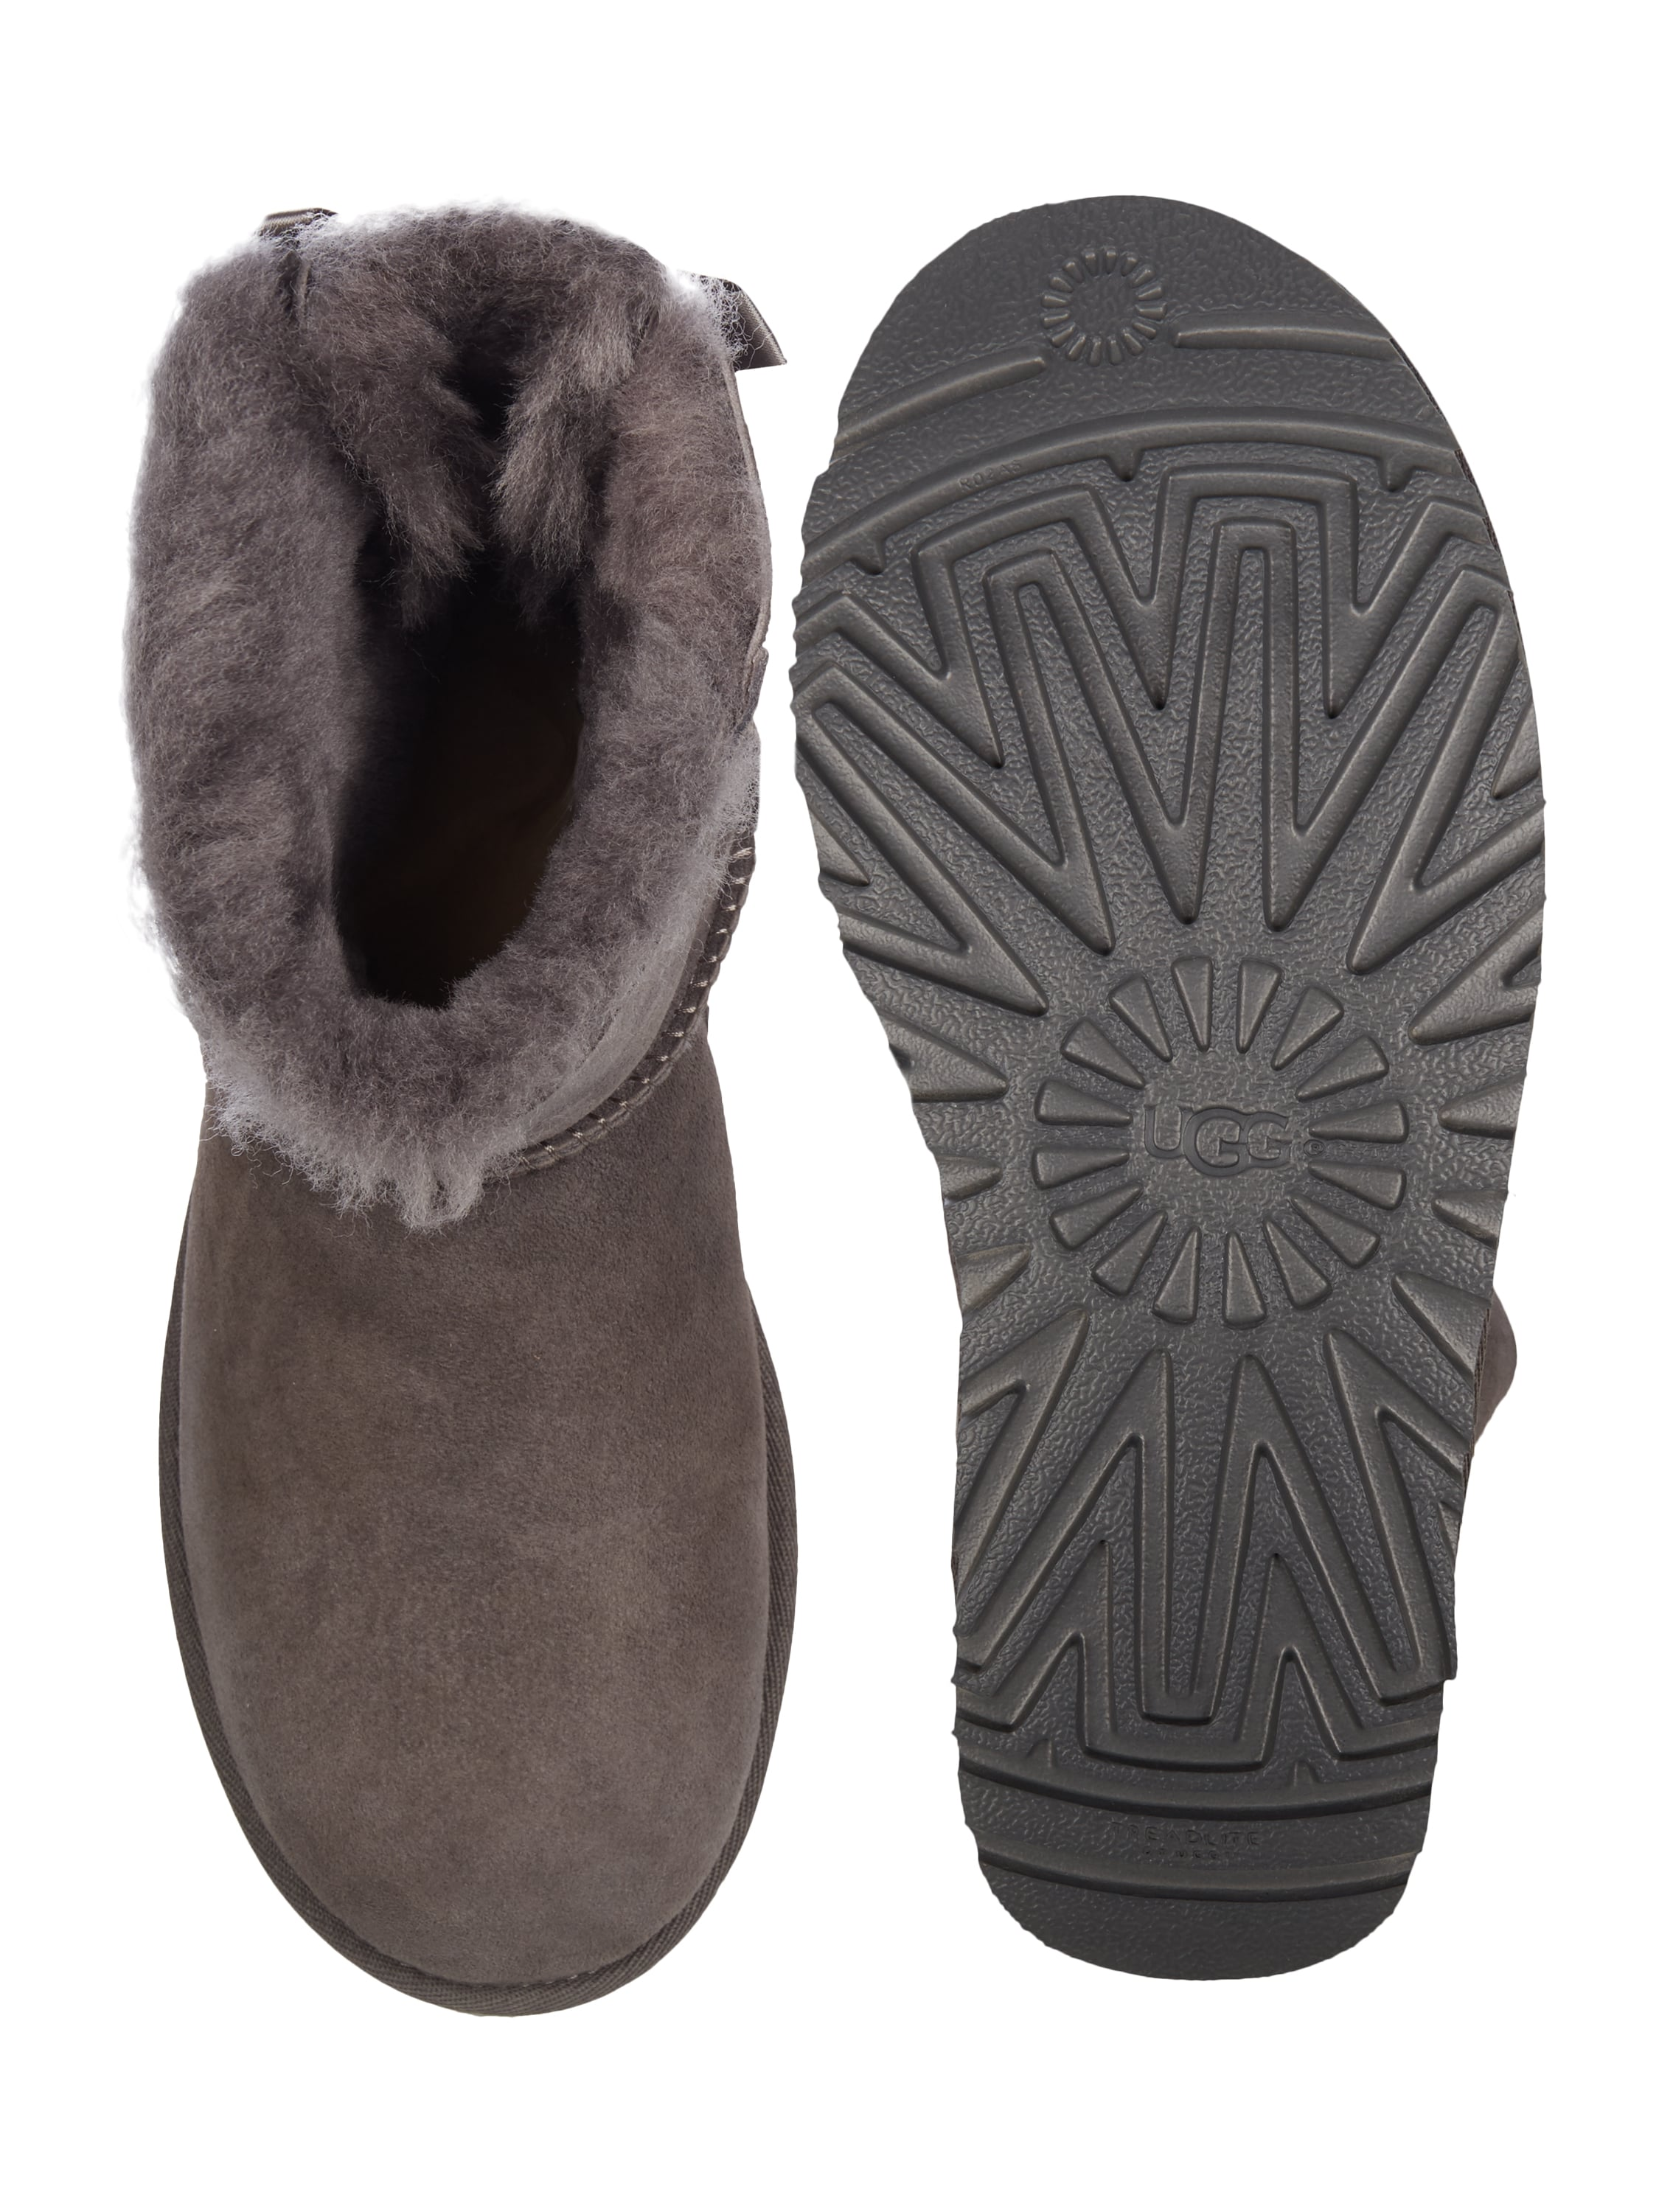 Discount Bearpaw Boots Sale: Save Up to 60% Off! Shop cristacarbo2wl55op.ga's huge selection of Discount Bearpaw Boots - Over 60 styles available. FREE Shipping & Exchanges, and a % price guarantee!